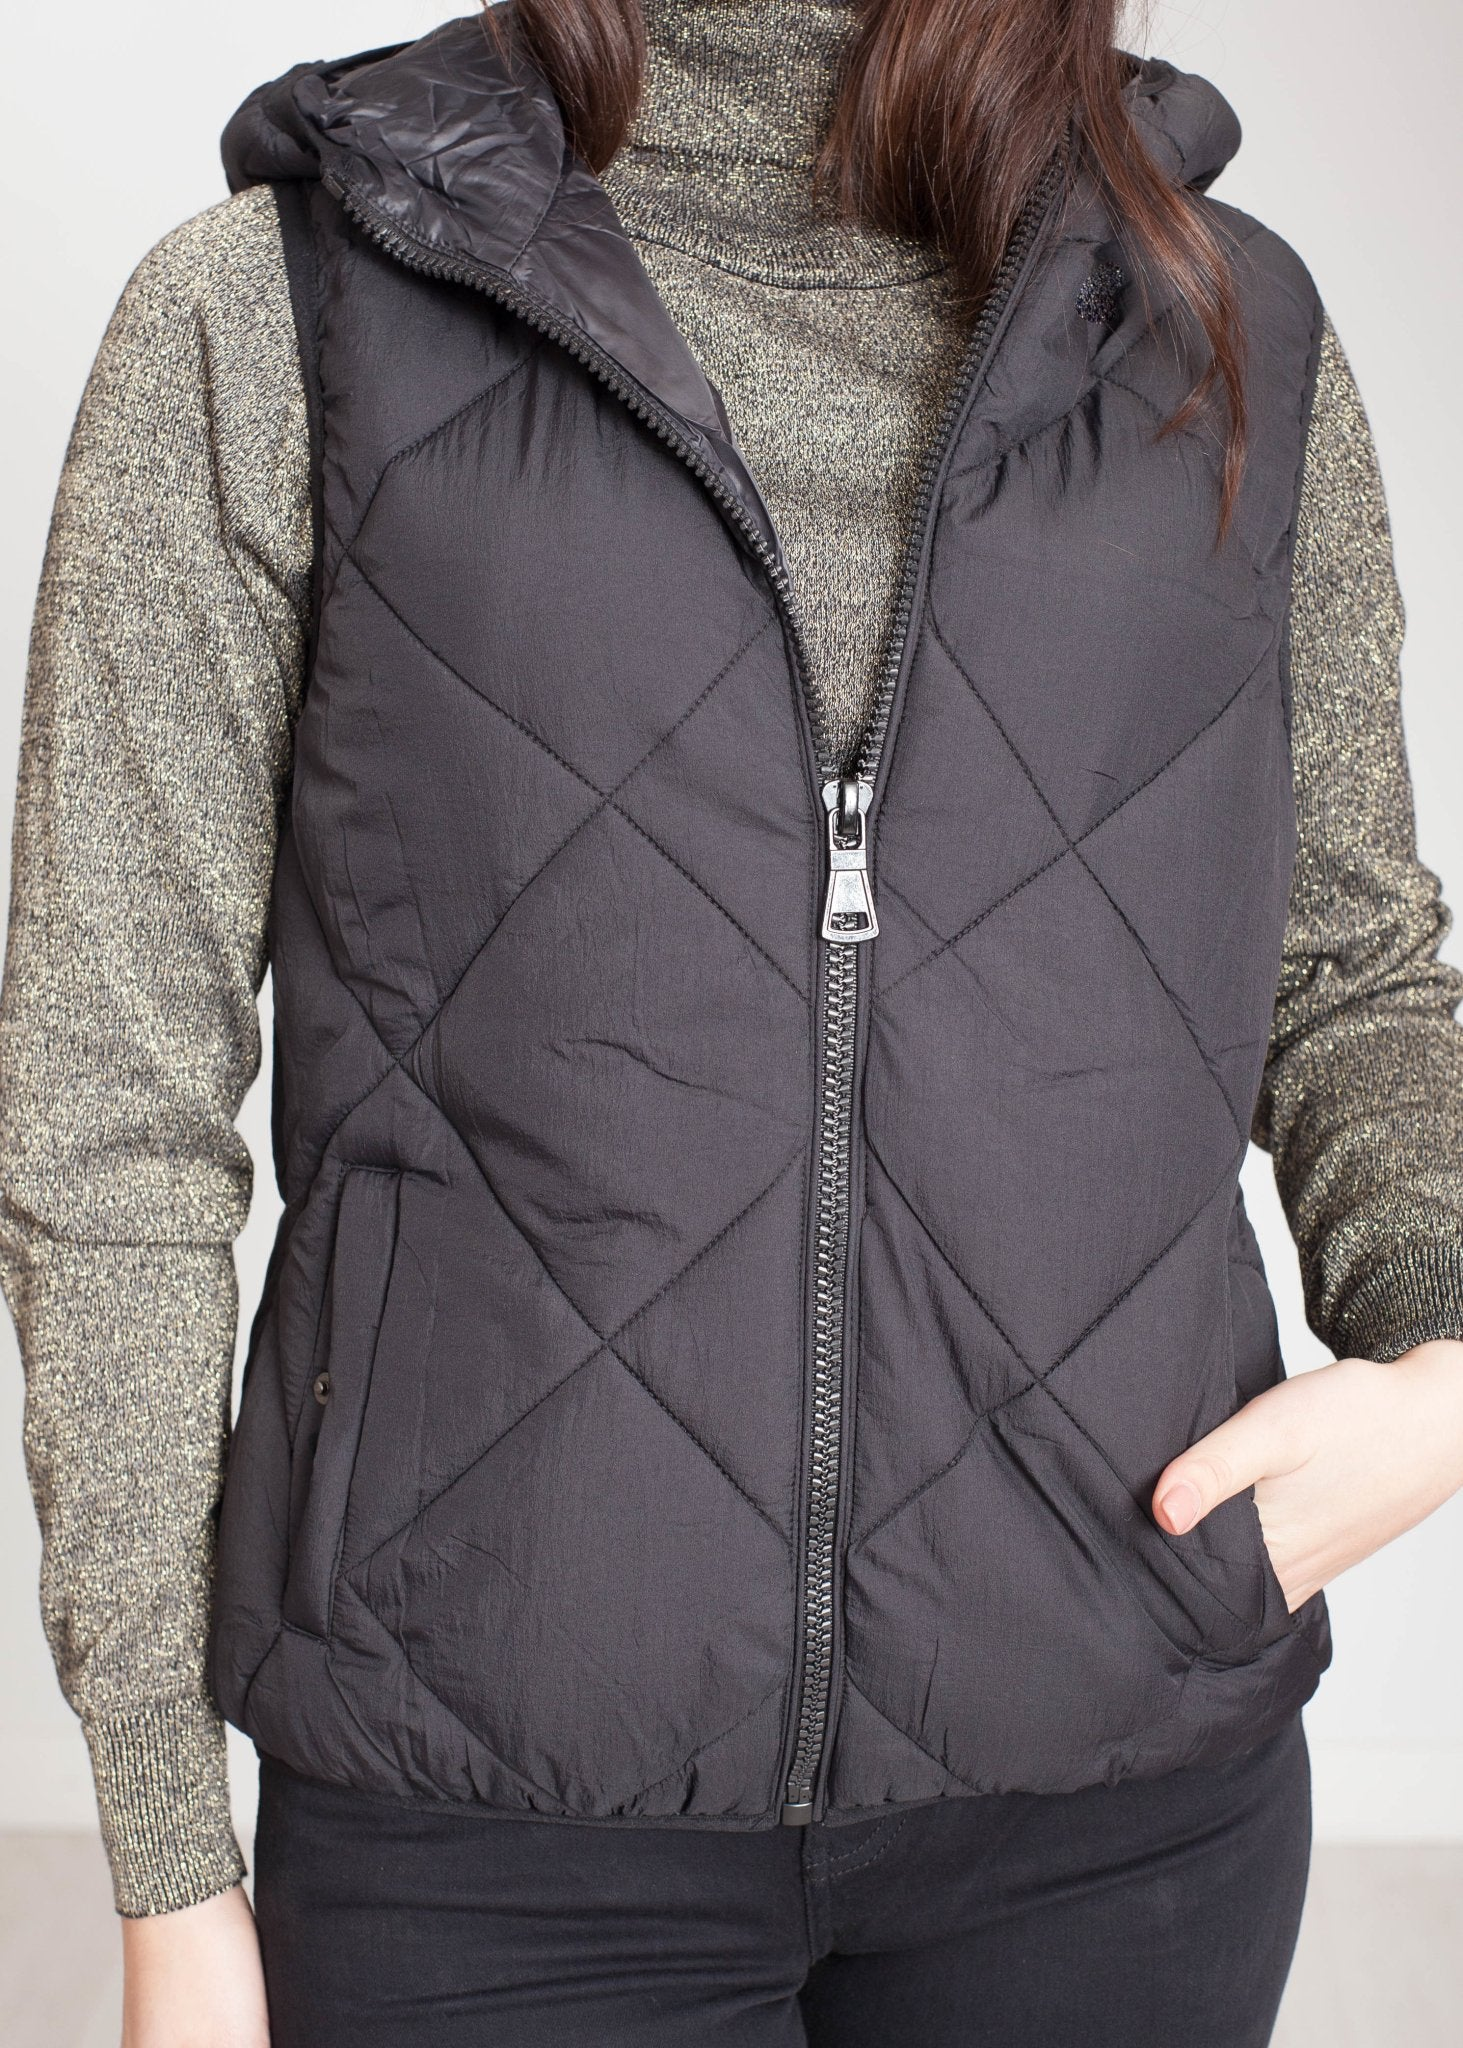 Alba Hooded Gilet In Black - The Walk in Wardrobe